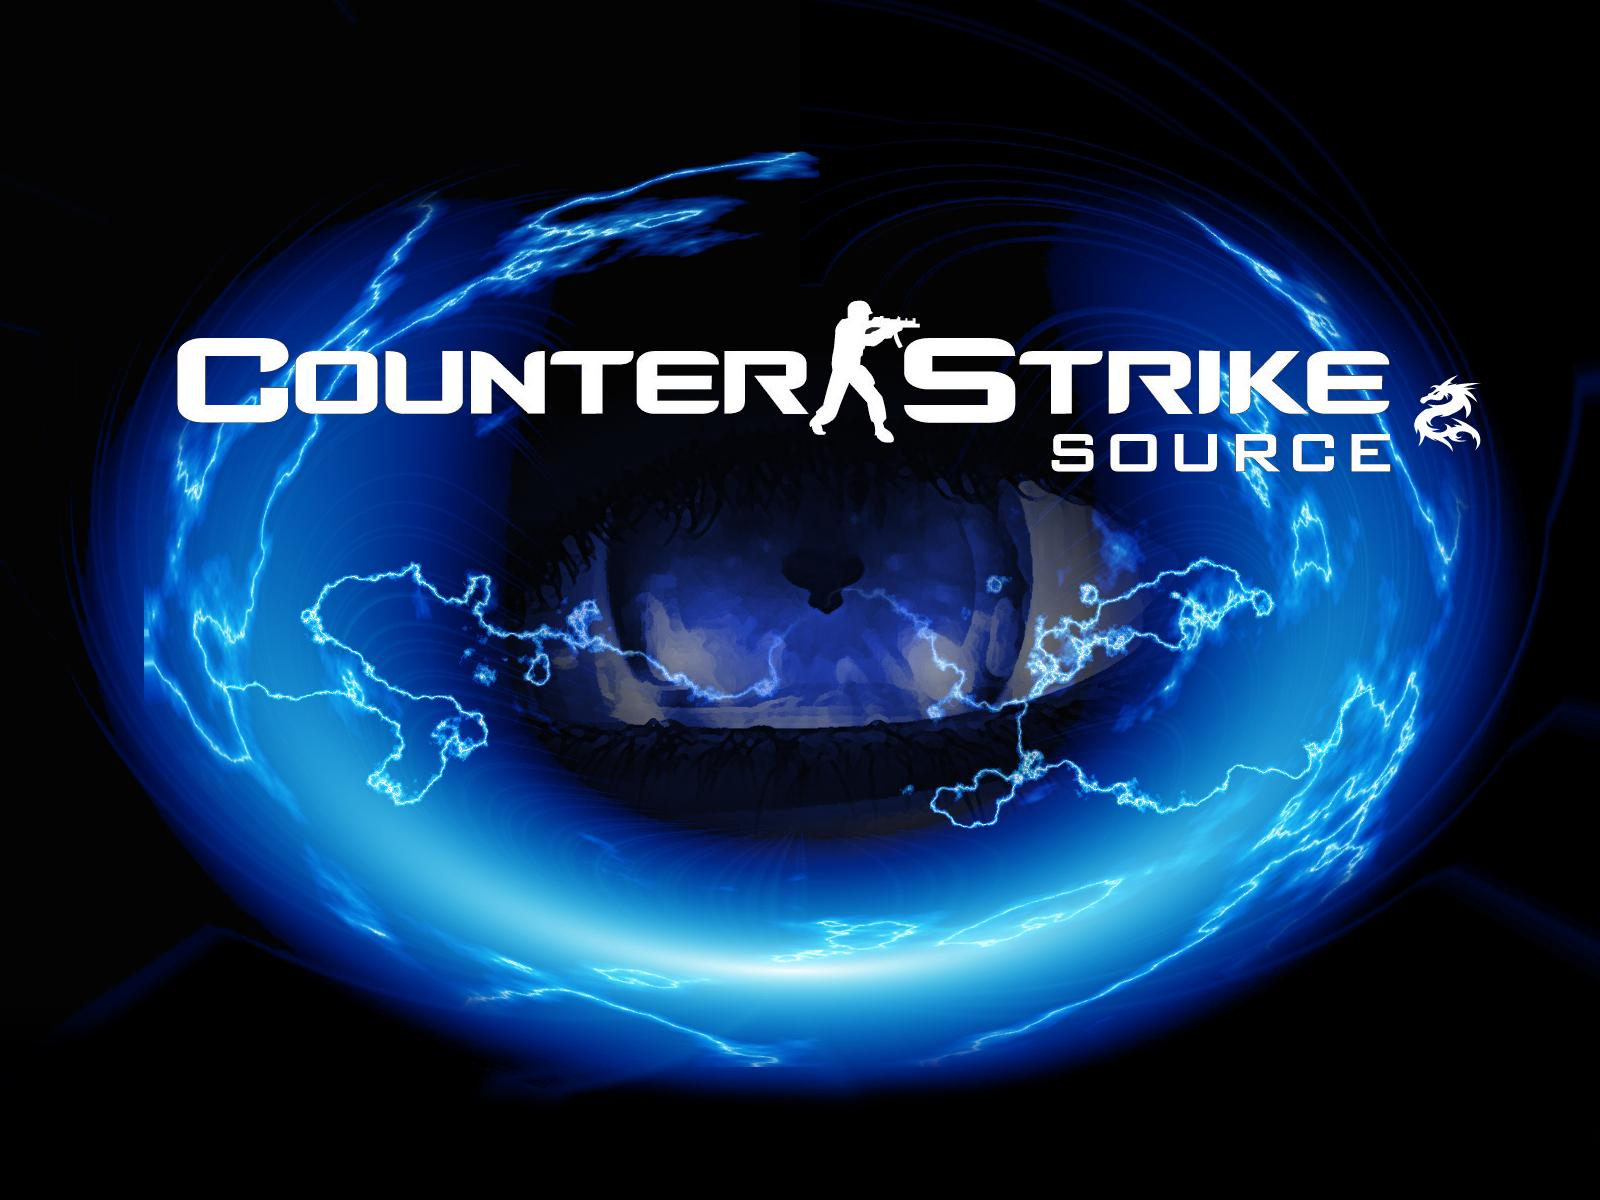 Counter Strike Source HD Wallpapers HD Video Game Desktop Wallpapers 1600x1200